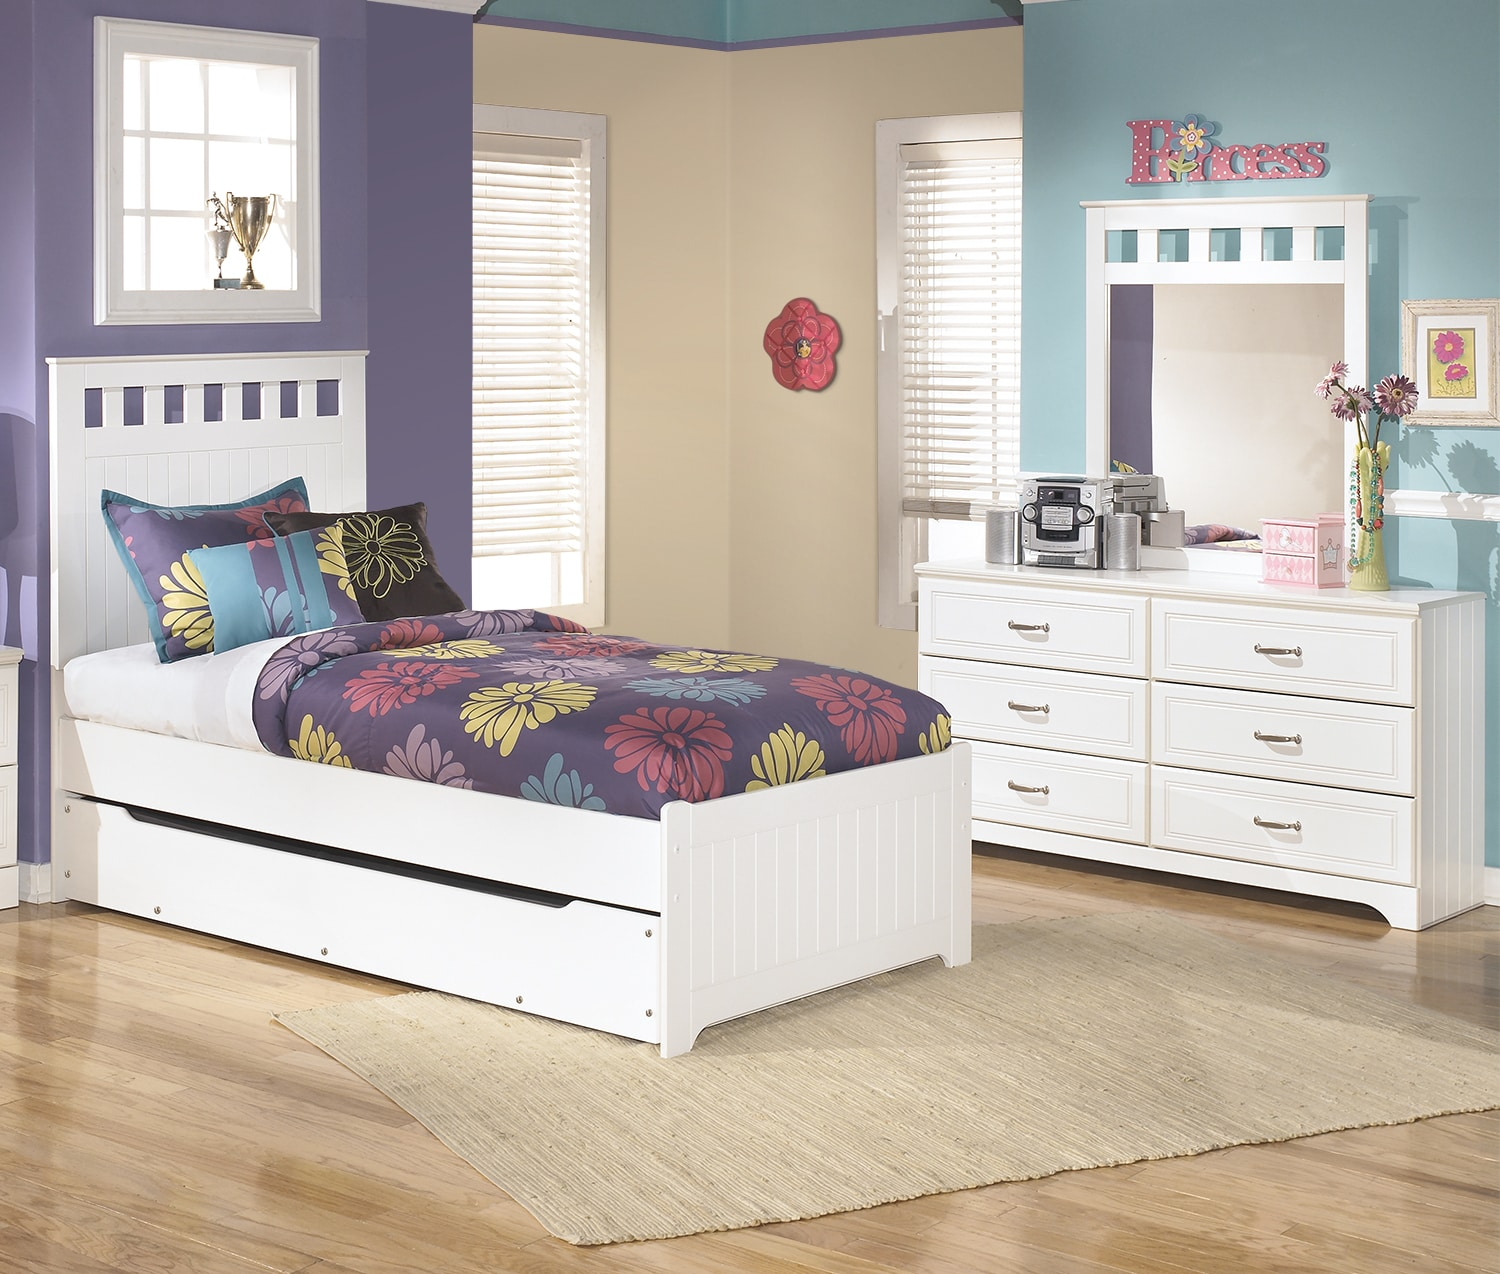 Kids Furniture - Lulu 5-Piece Twin Panel Bed Package with Trundle